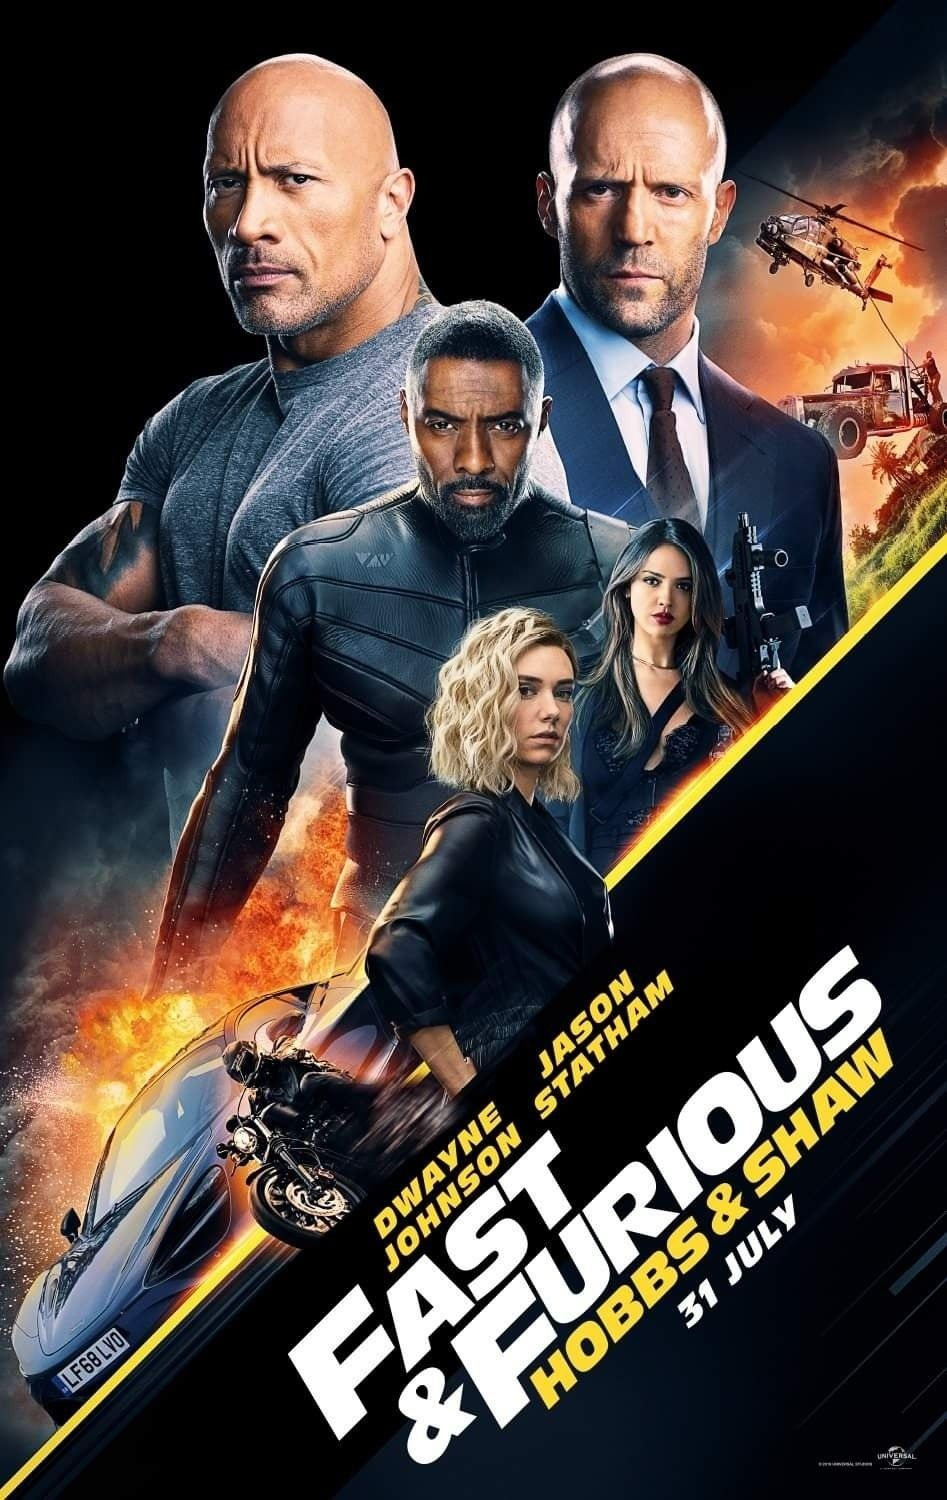 Hobbs And Shaw International Poster In 2019 Movies To Watch